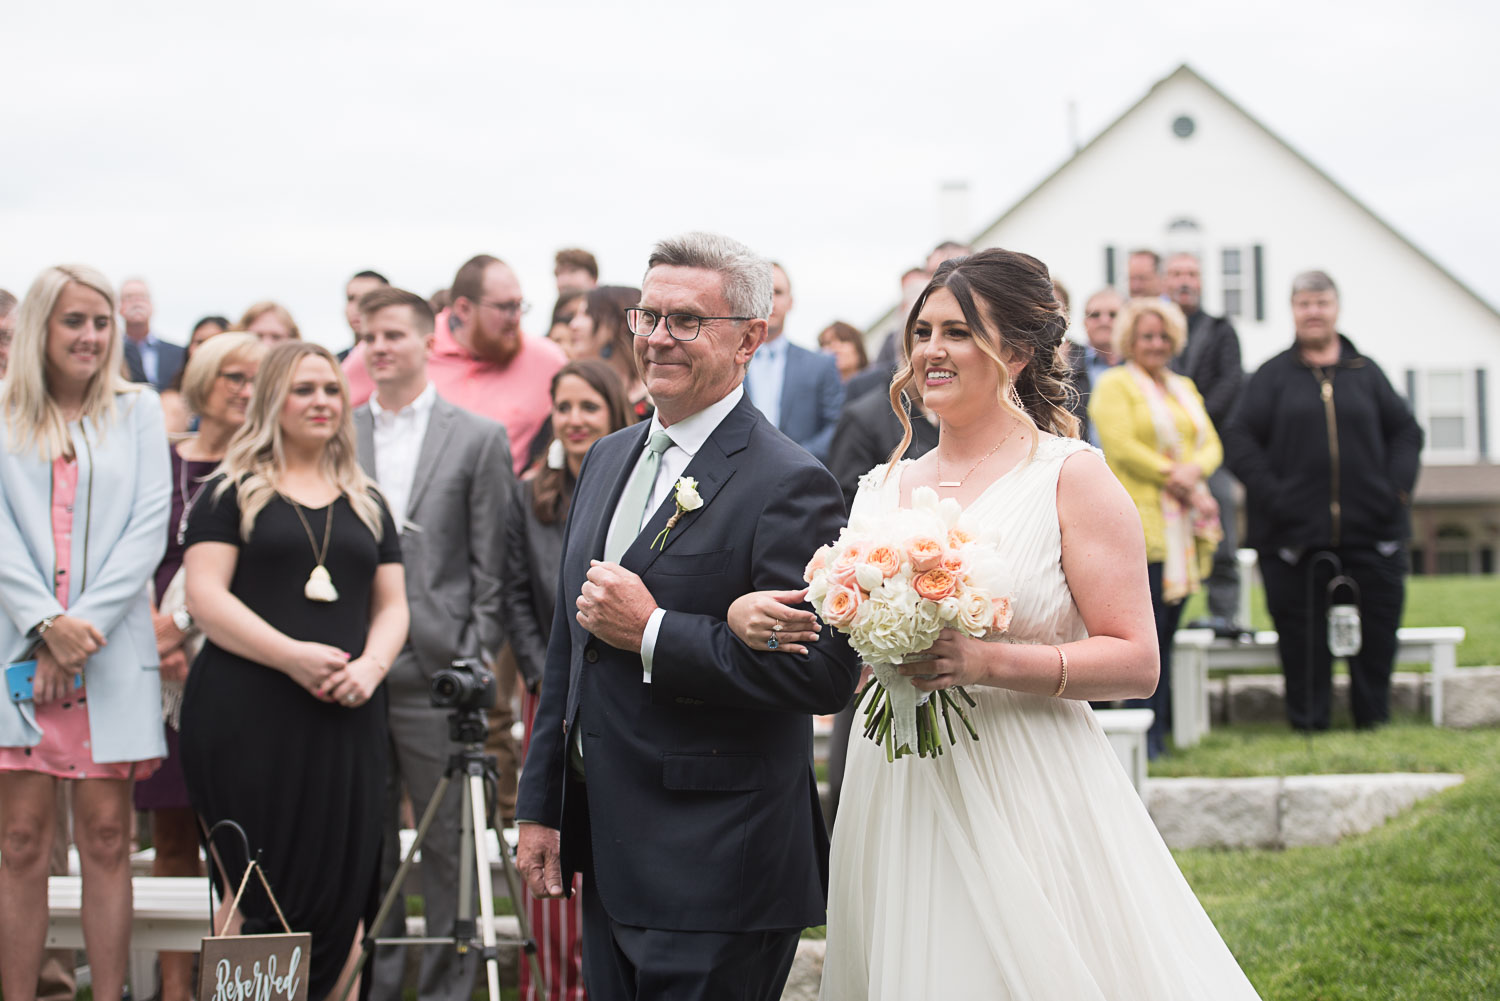 60 Bride given away by father.jpg